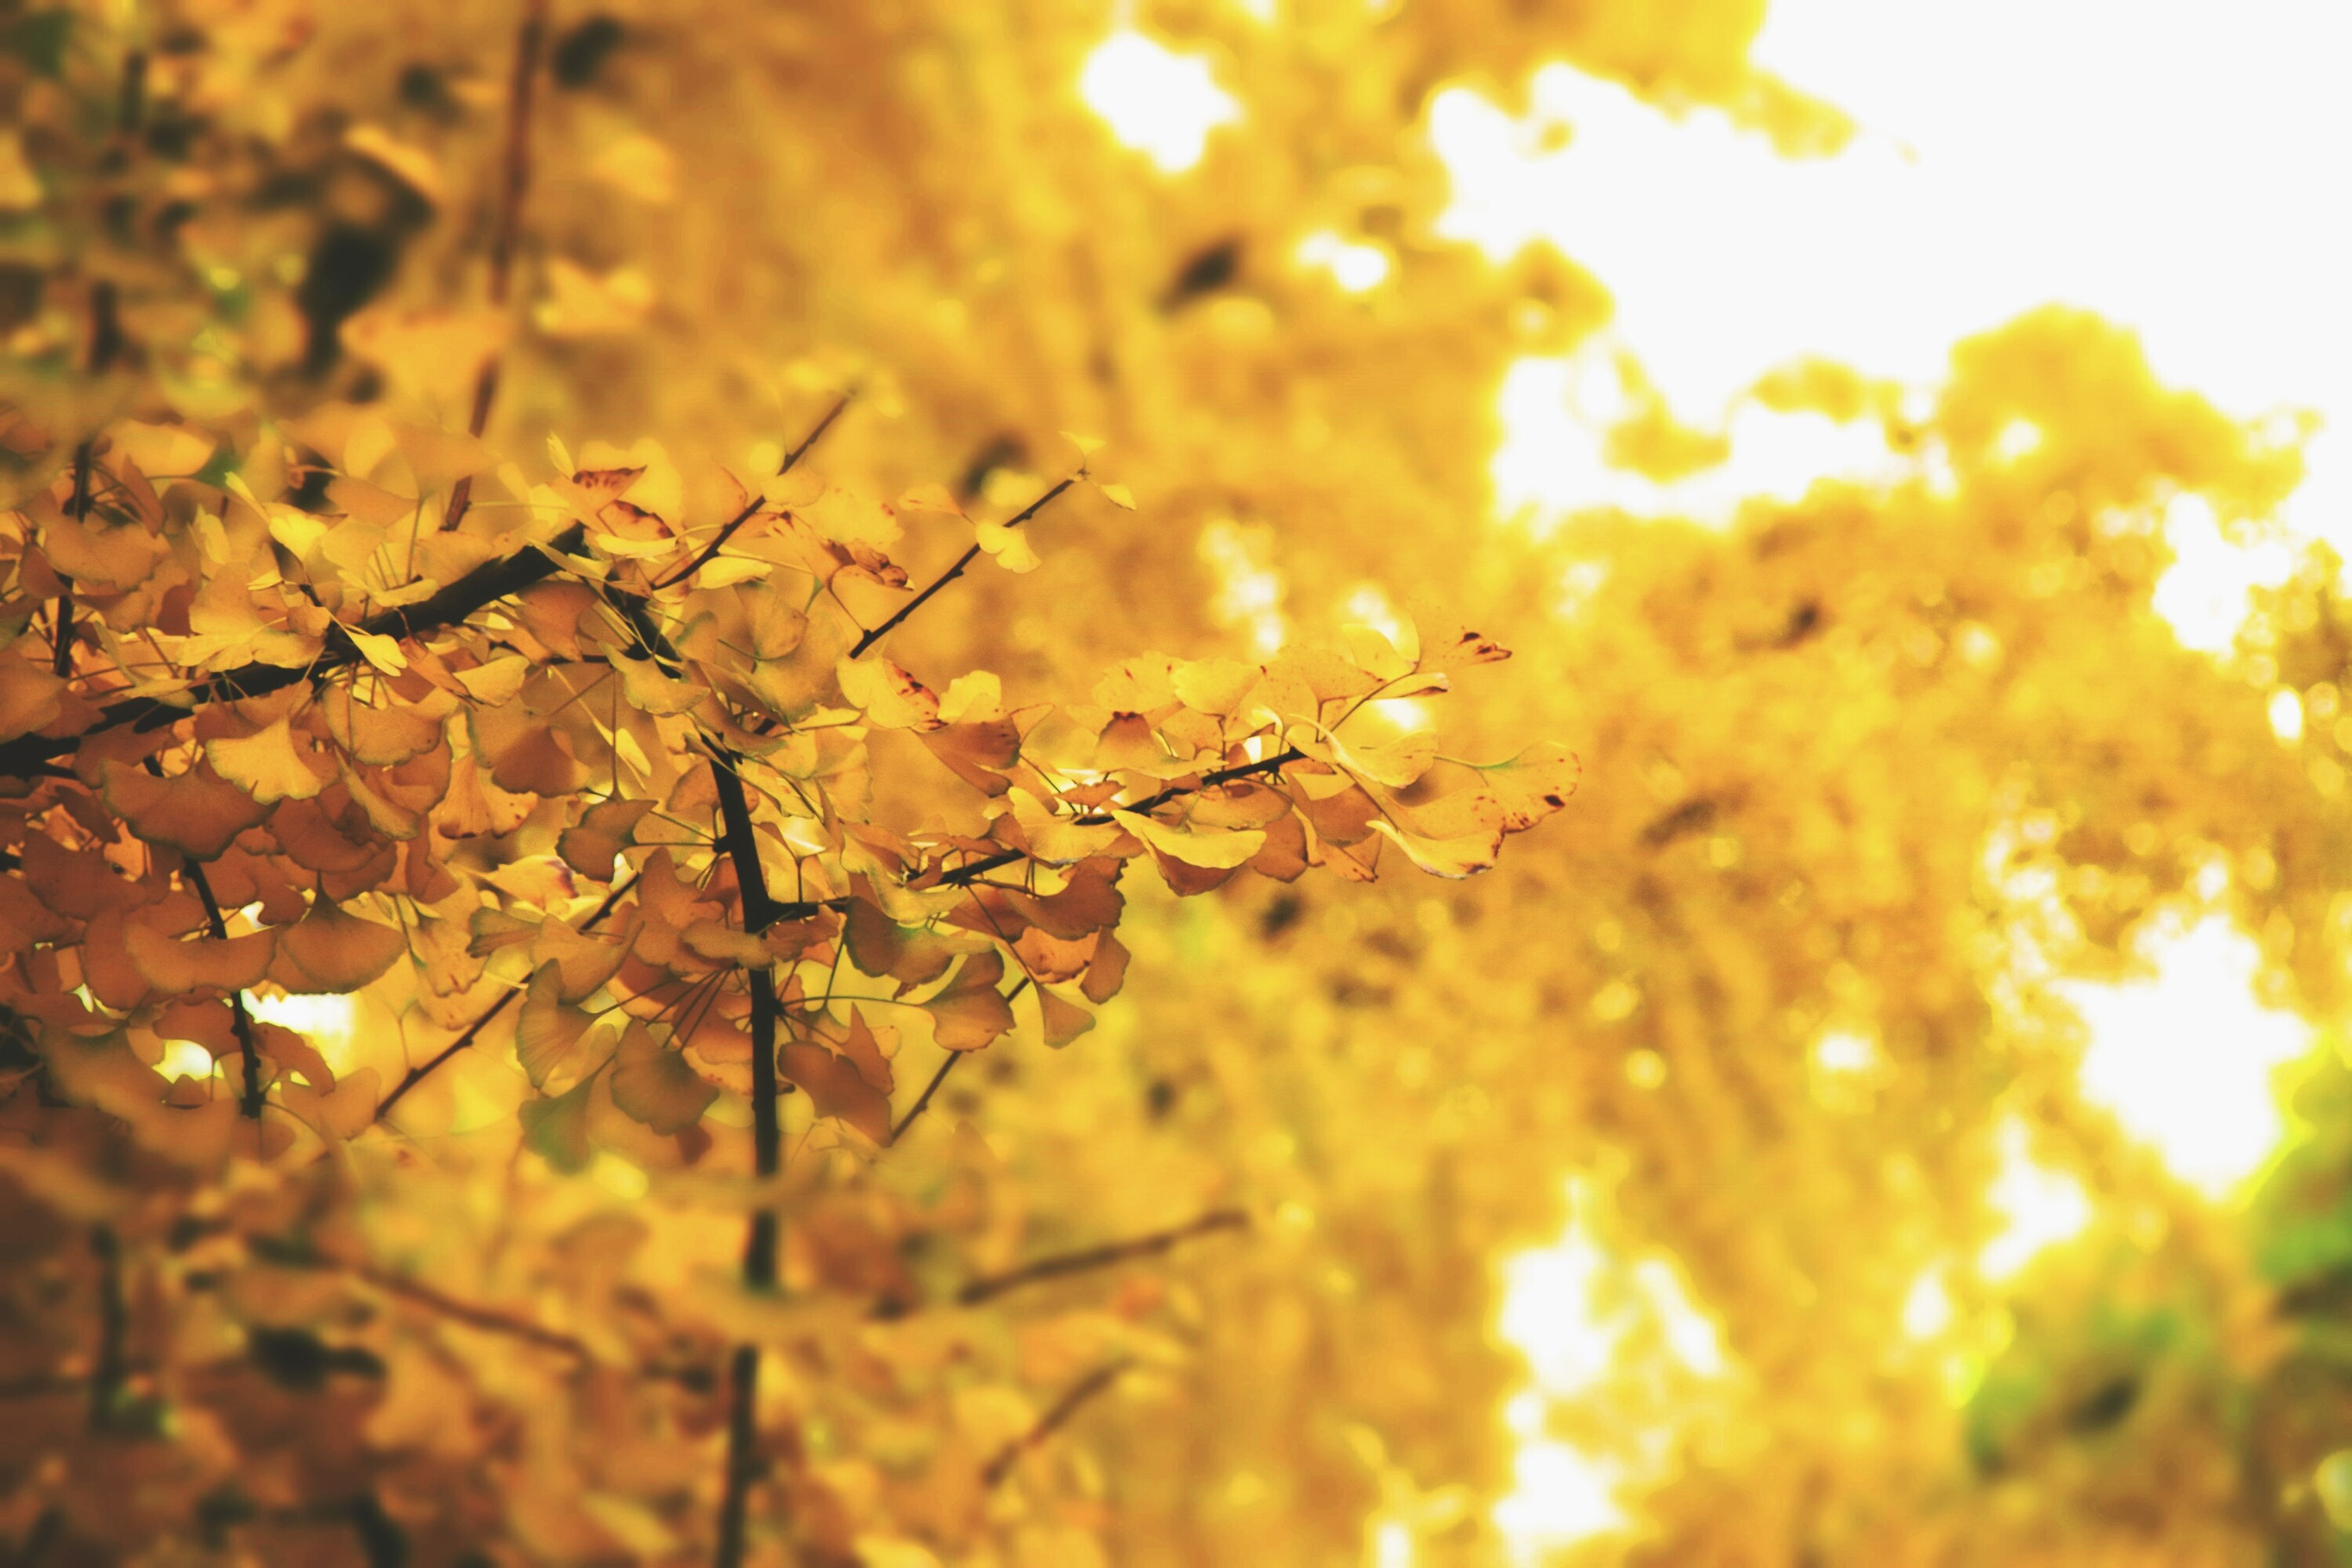 nature, growth, outdoors, no people, beauty in nature, tree, leaf, close-up, autumn, day, plant, branch, freshness, fragility